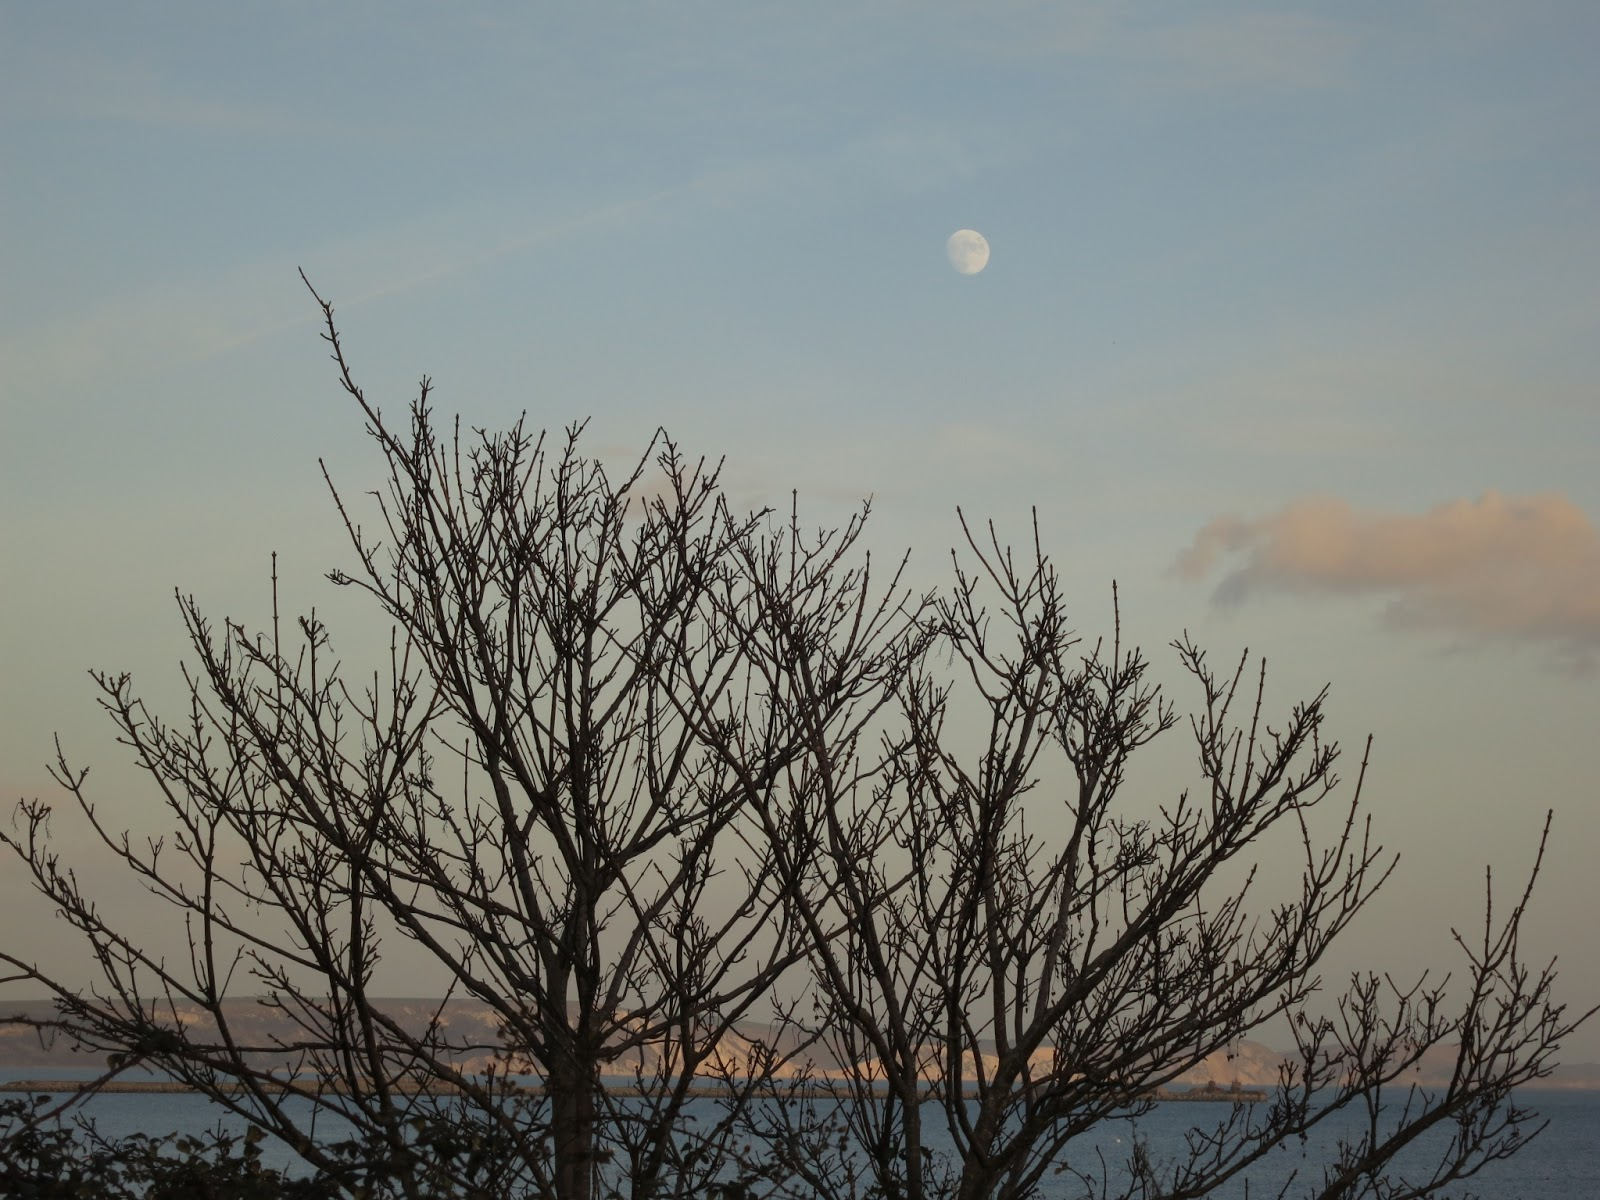 Sycamore and moon - with the cliffs of Purbeck in the distance.